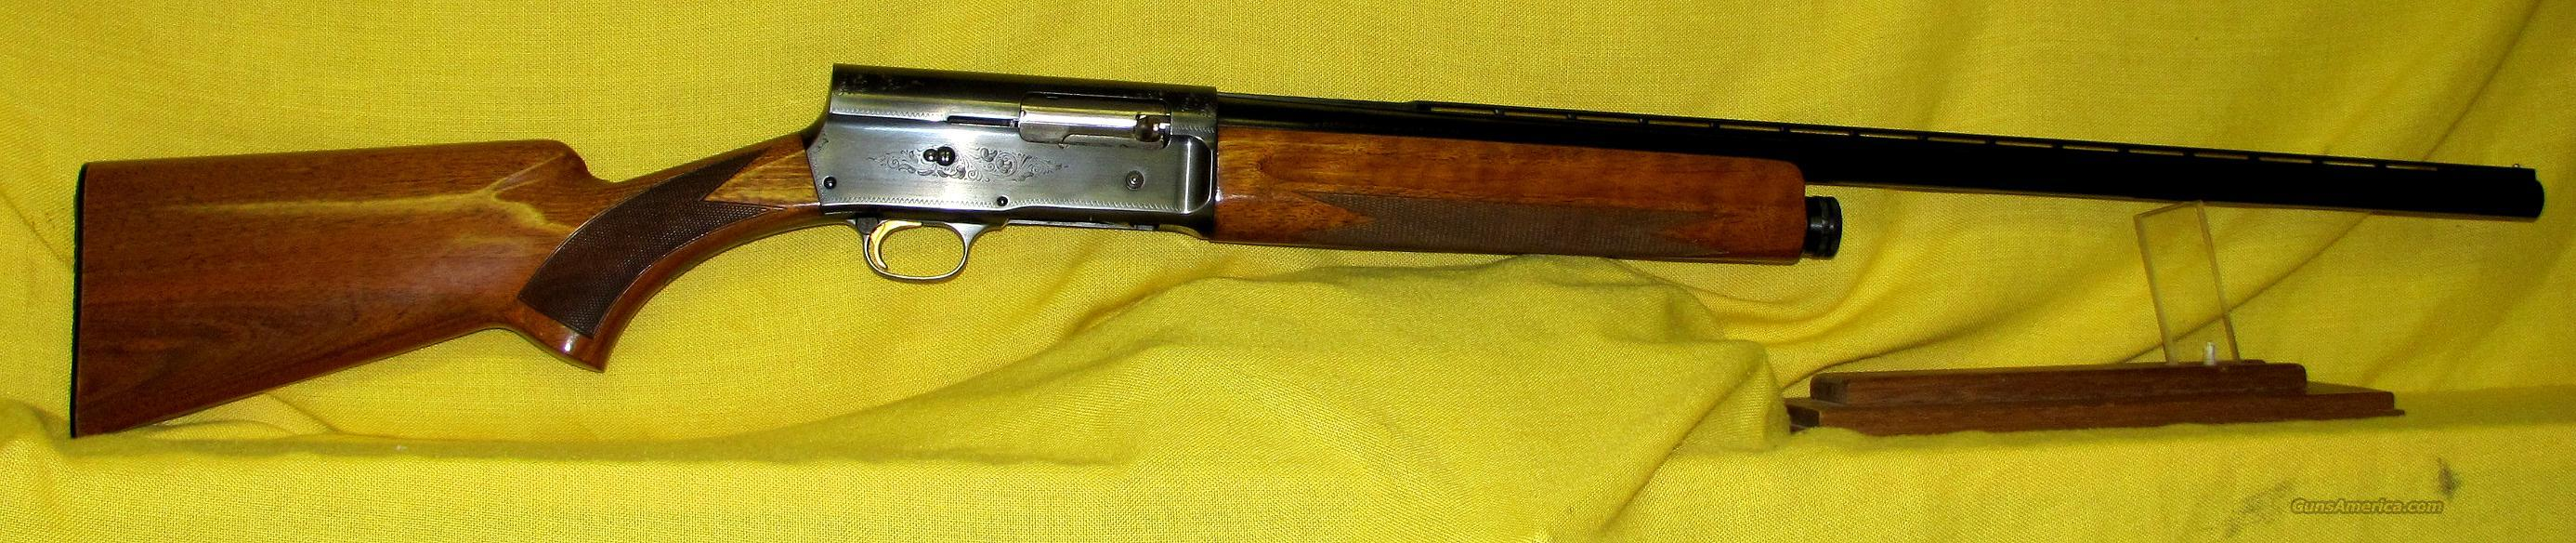 "BROWNING LIGHT TWELVE 12GA 27 1/2""  Guns > Shotguns > Browning Shotguns > Autoloaders > Hunting"